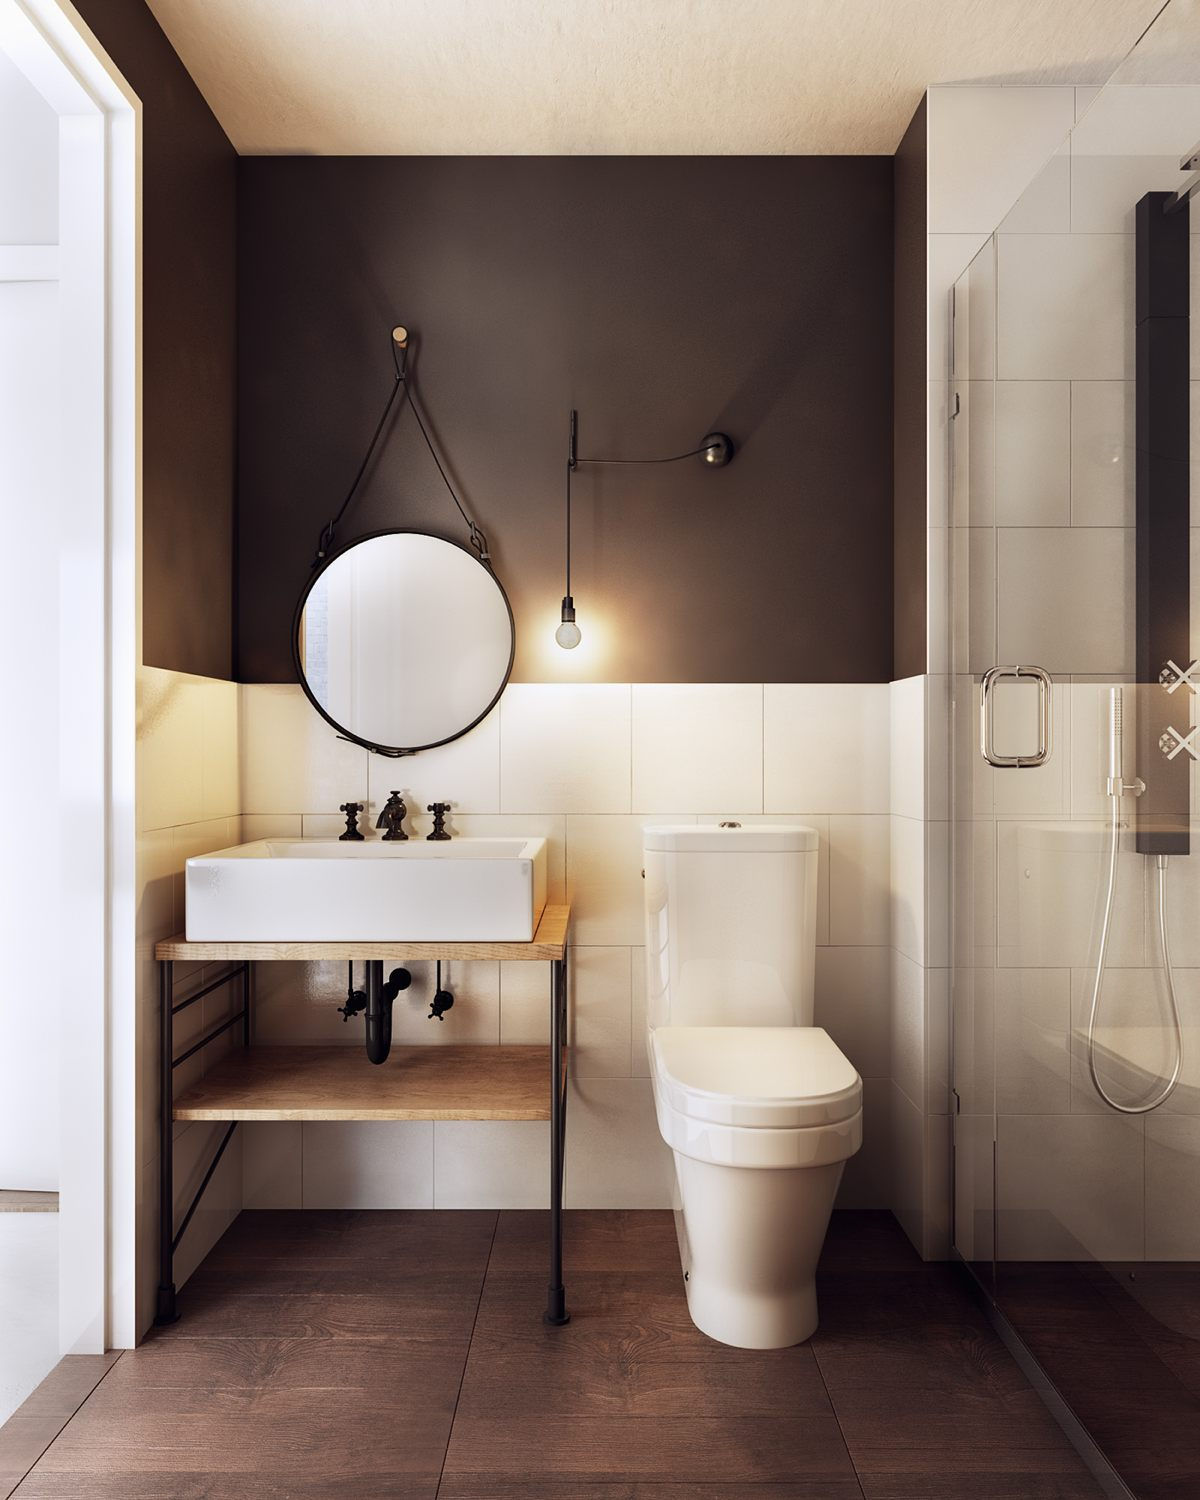 A charming nordic apartment interior design by koj design for Bathroom decor ideas images